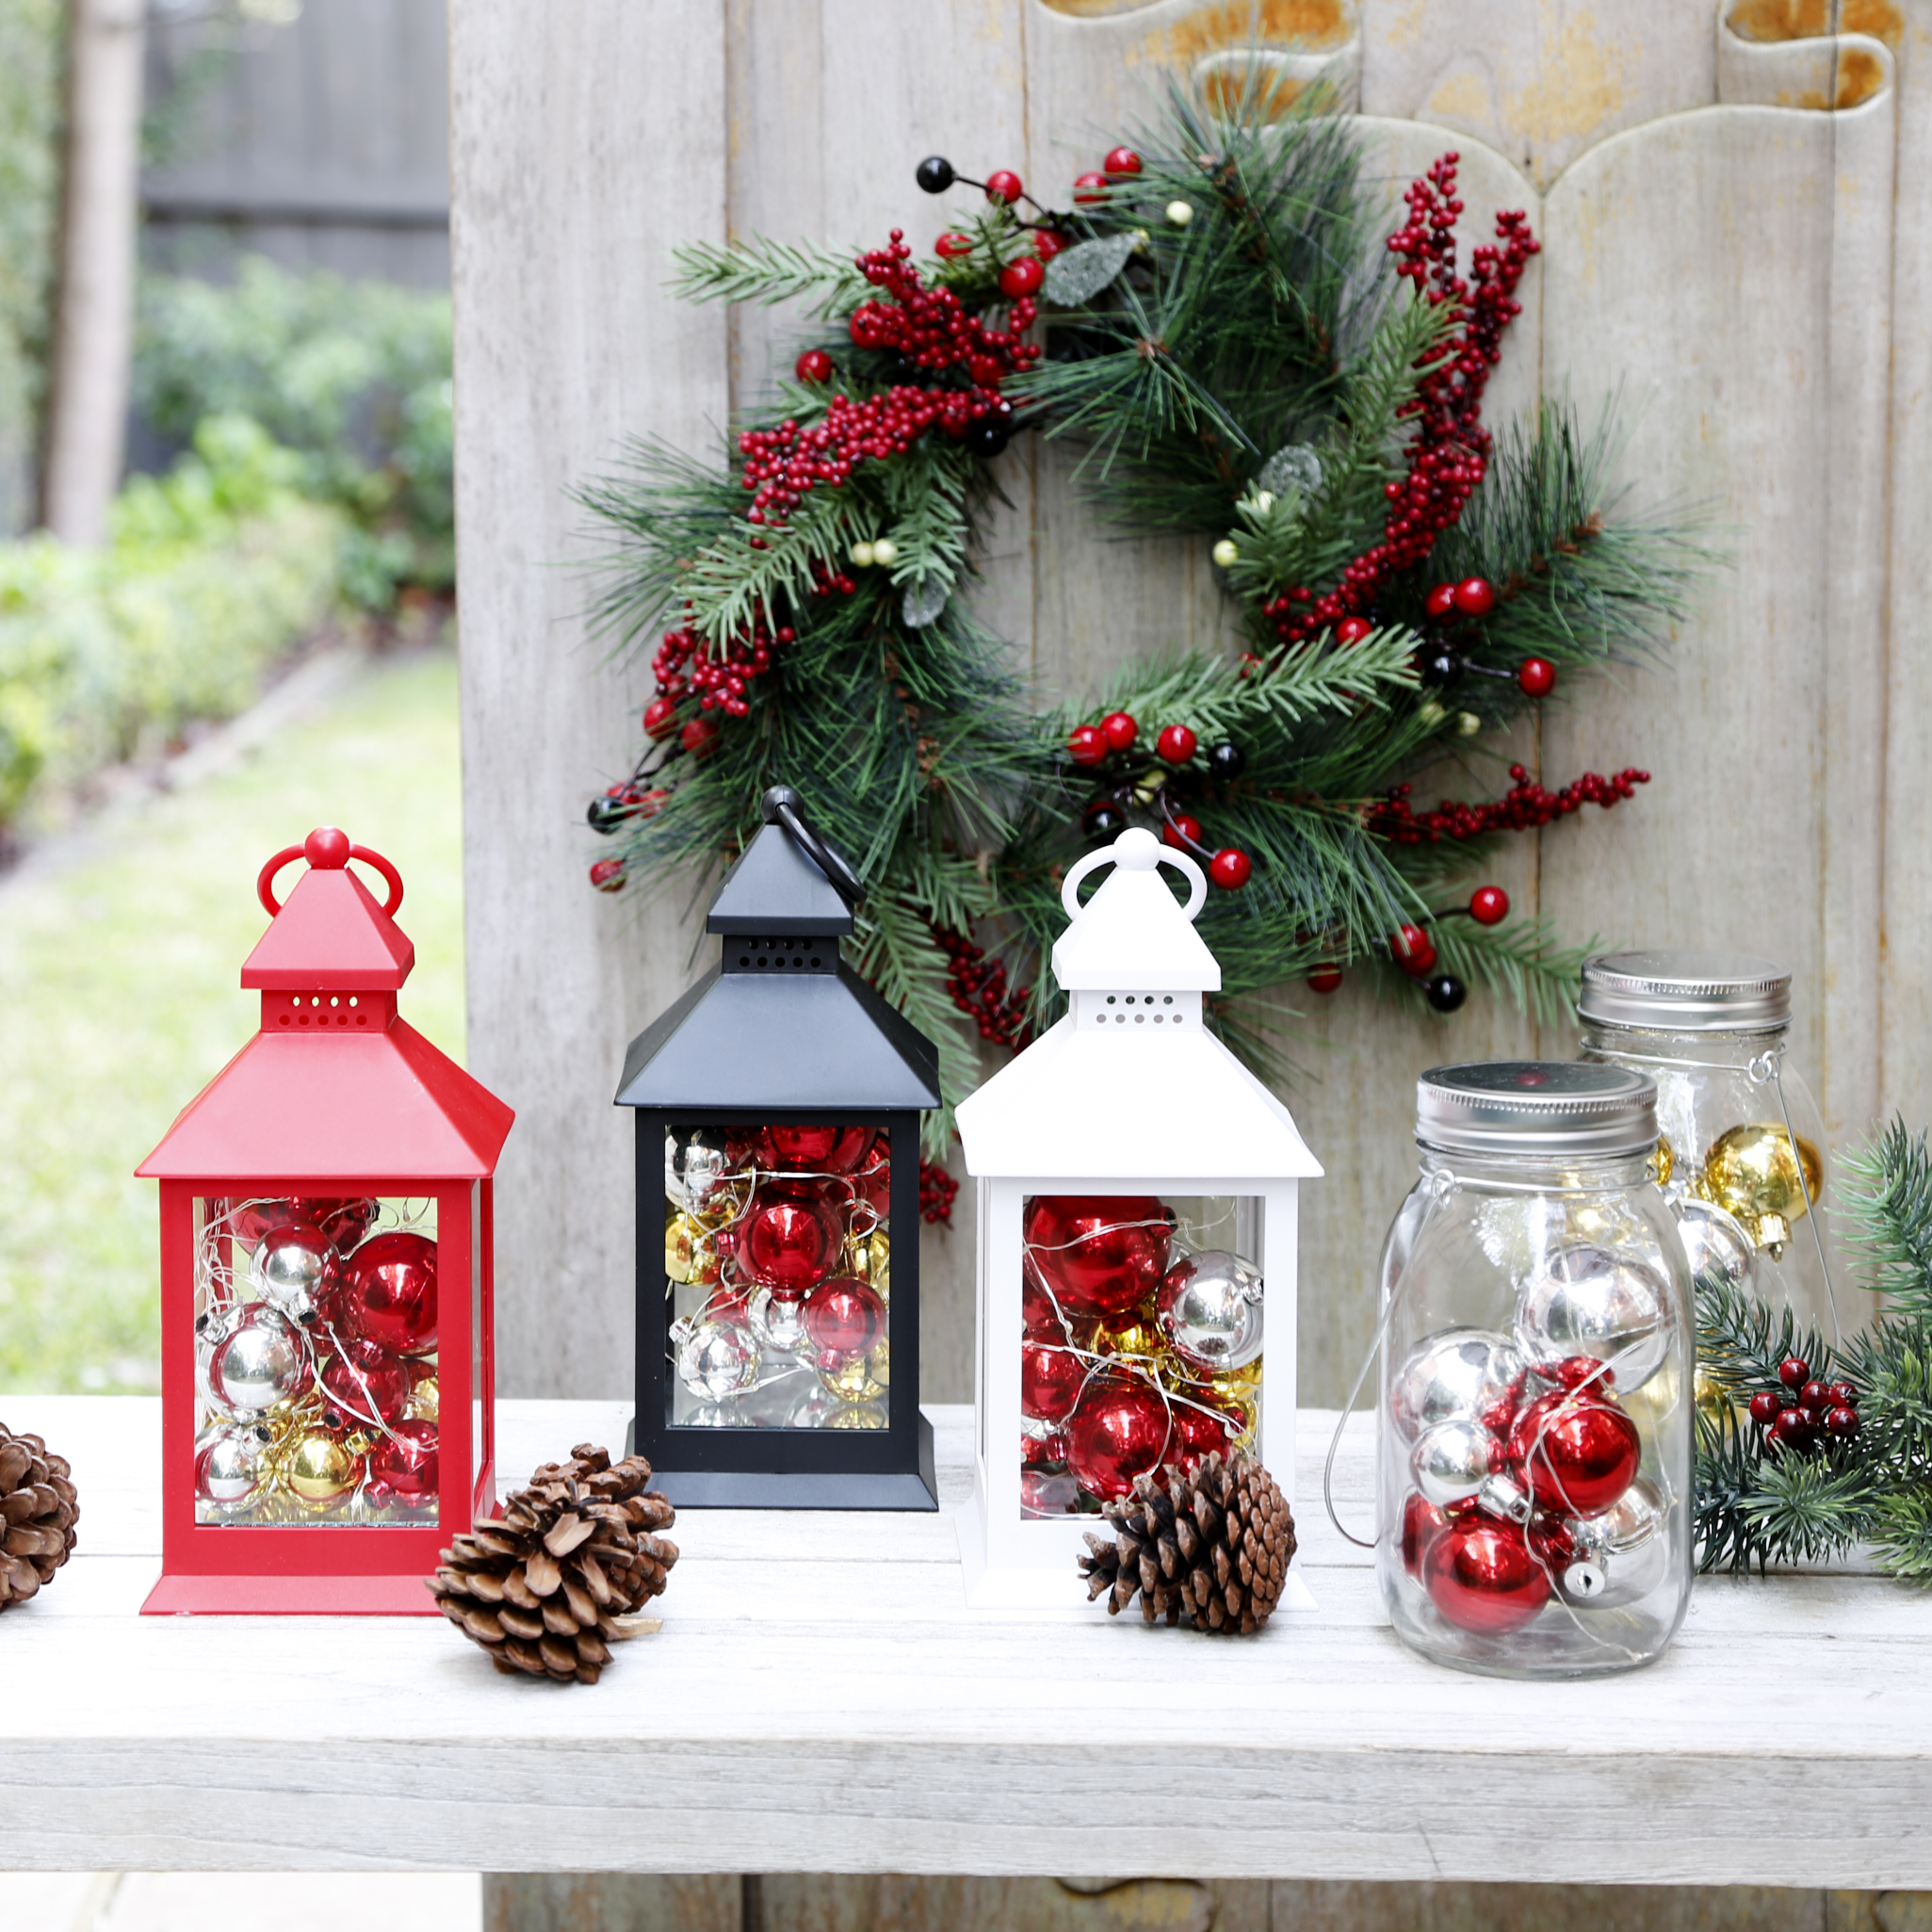 Fun Christmas Table Decorations: Put Some Christmas Decorations In Jars Or Lanterns To Make